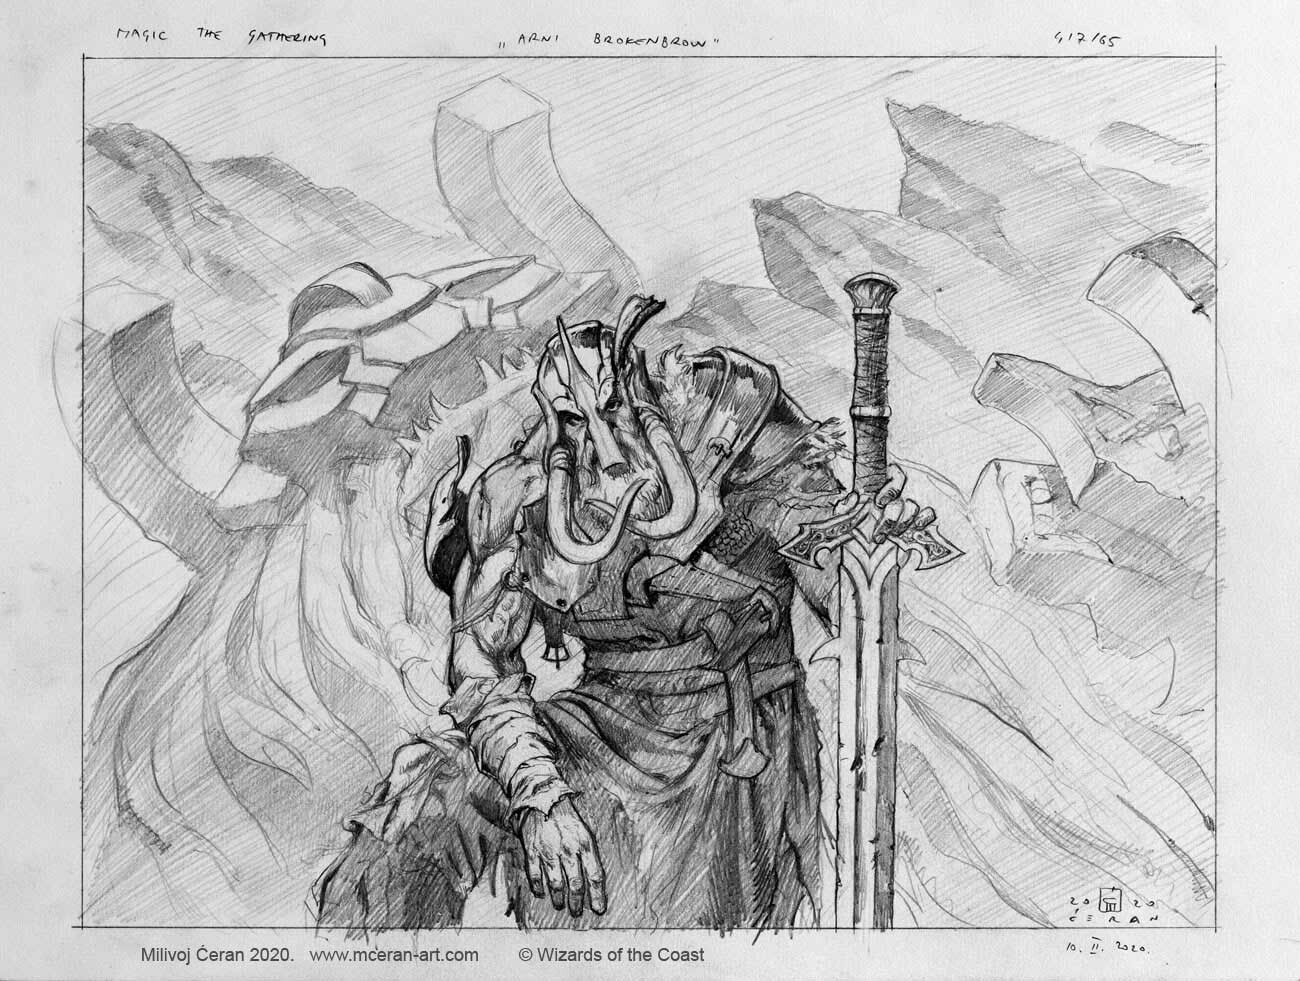 "- ""Arni Brokenbrow"" detailed sketch - a-3, size 29,7 x 42 cm (12x16 inches) - pencil on paper - © Wizards of the Coast - AD Tom Jenkot - Magic the Gathering, ""Kaldheim"""